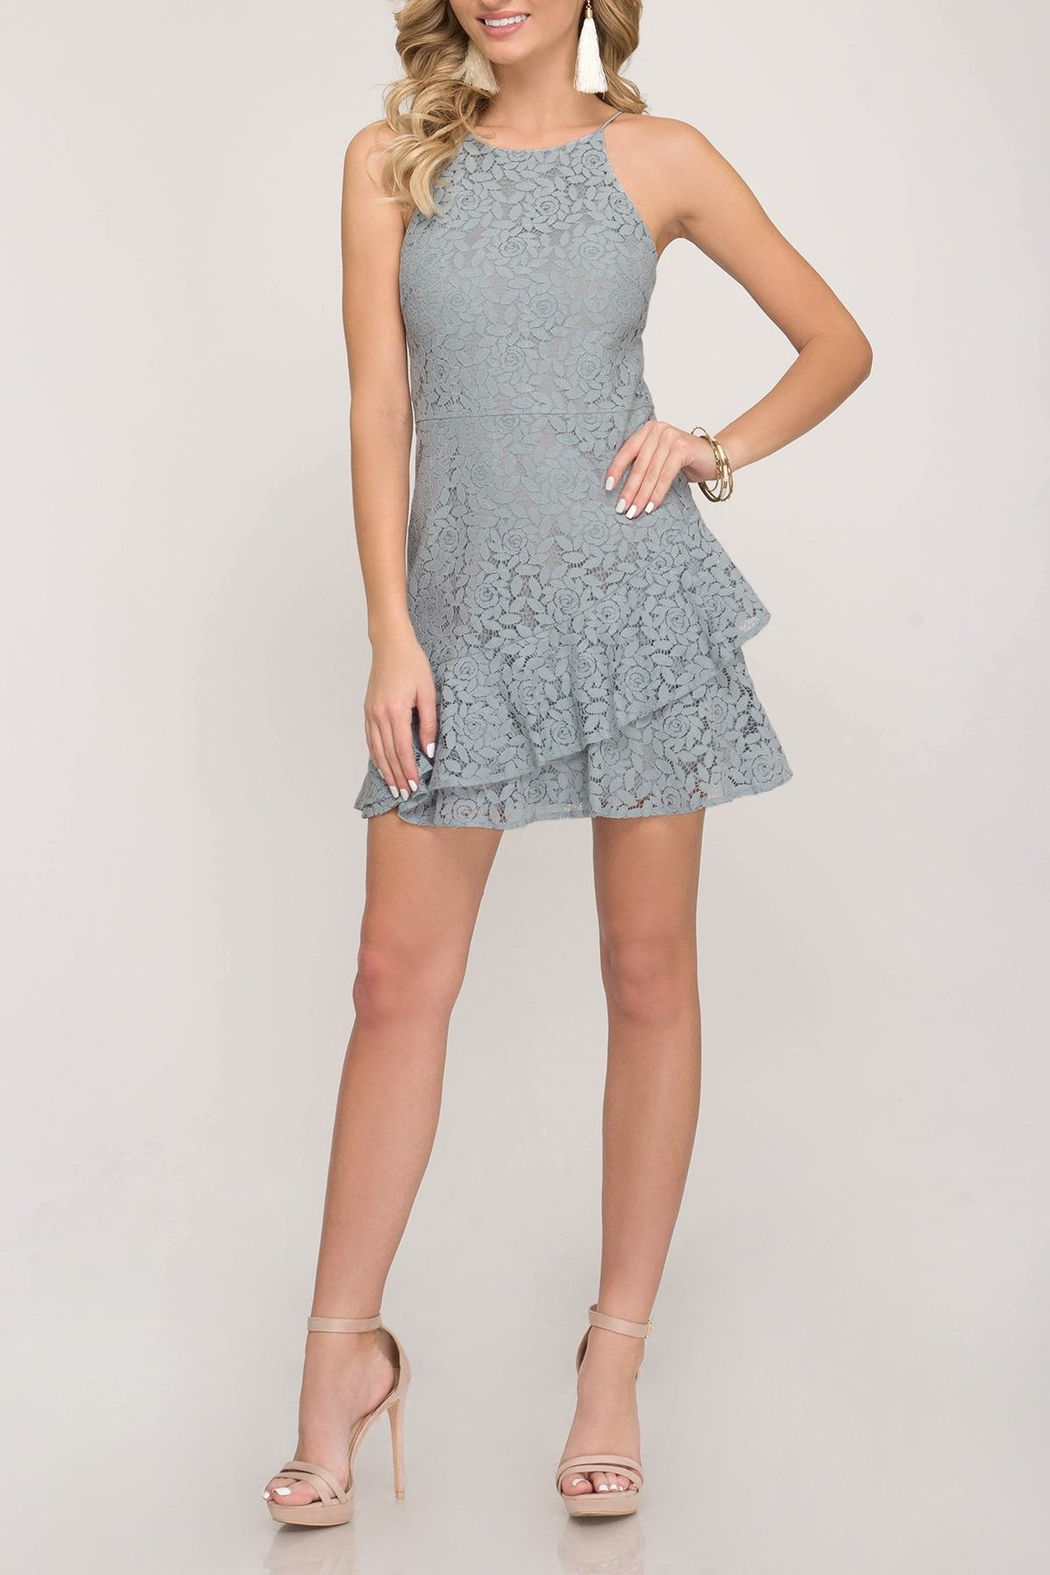 She + Sky Lace Cami Dress - Main Image